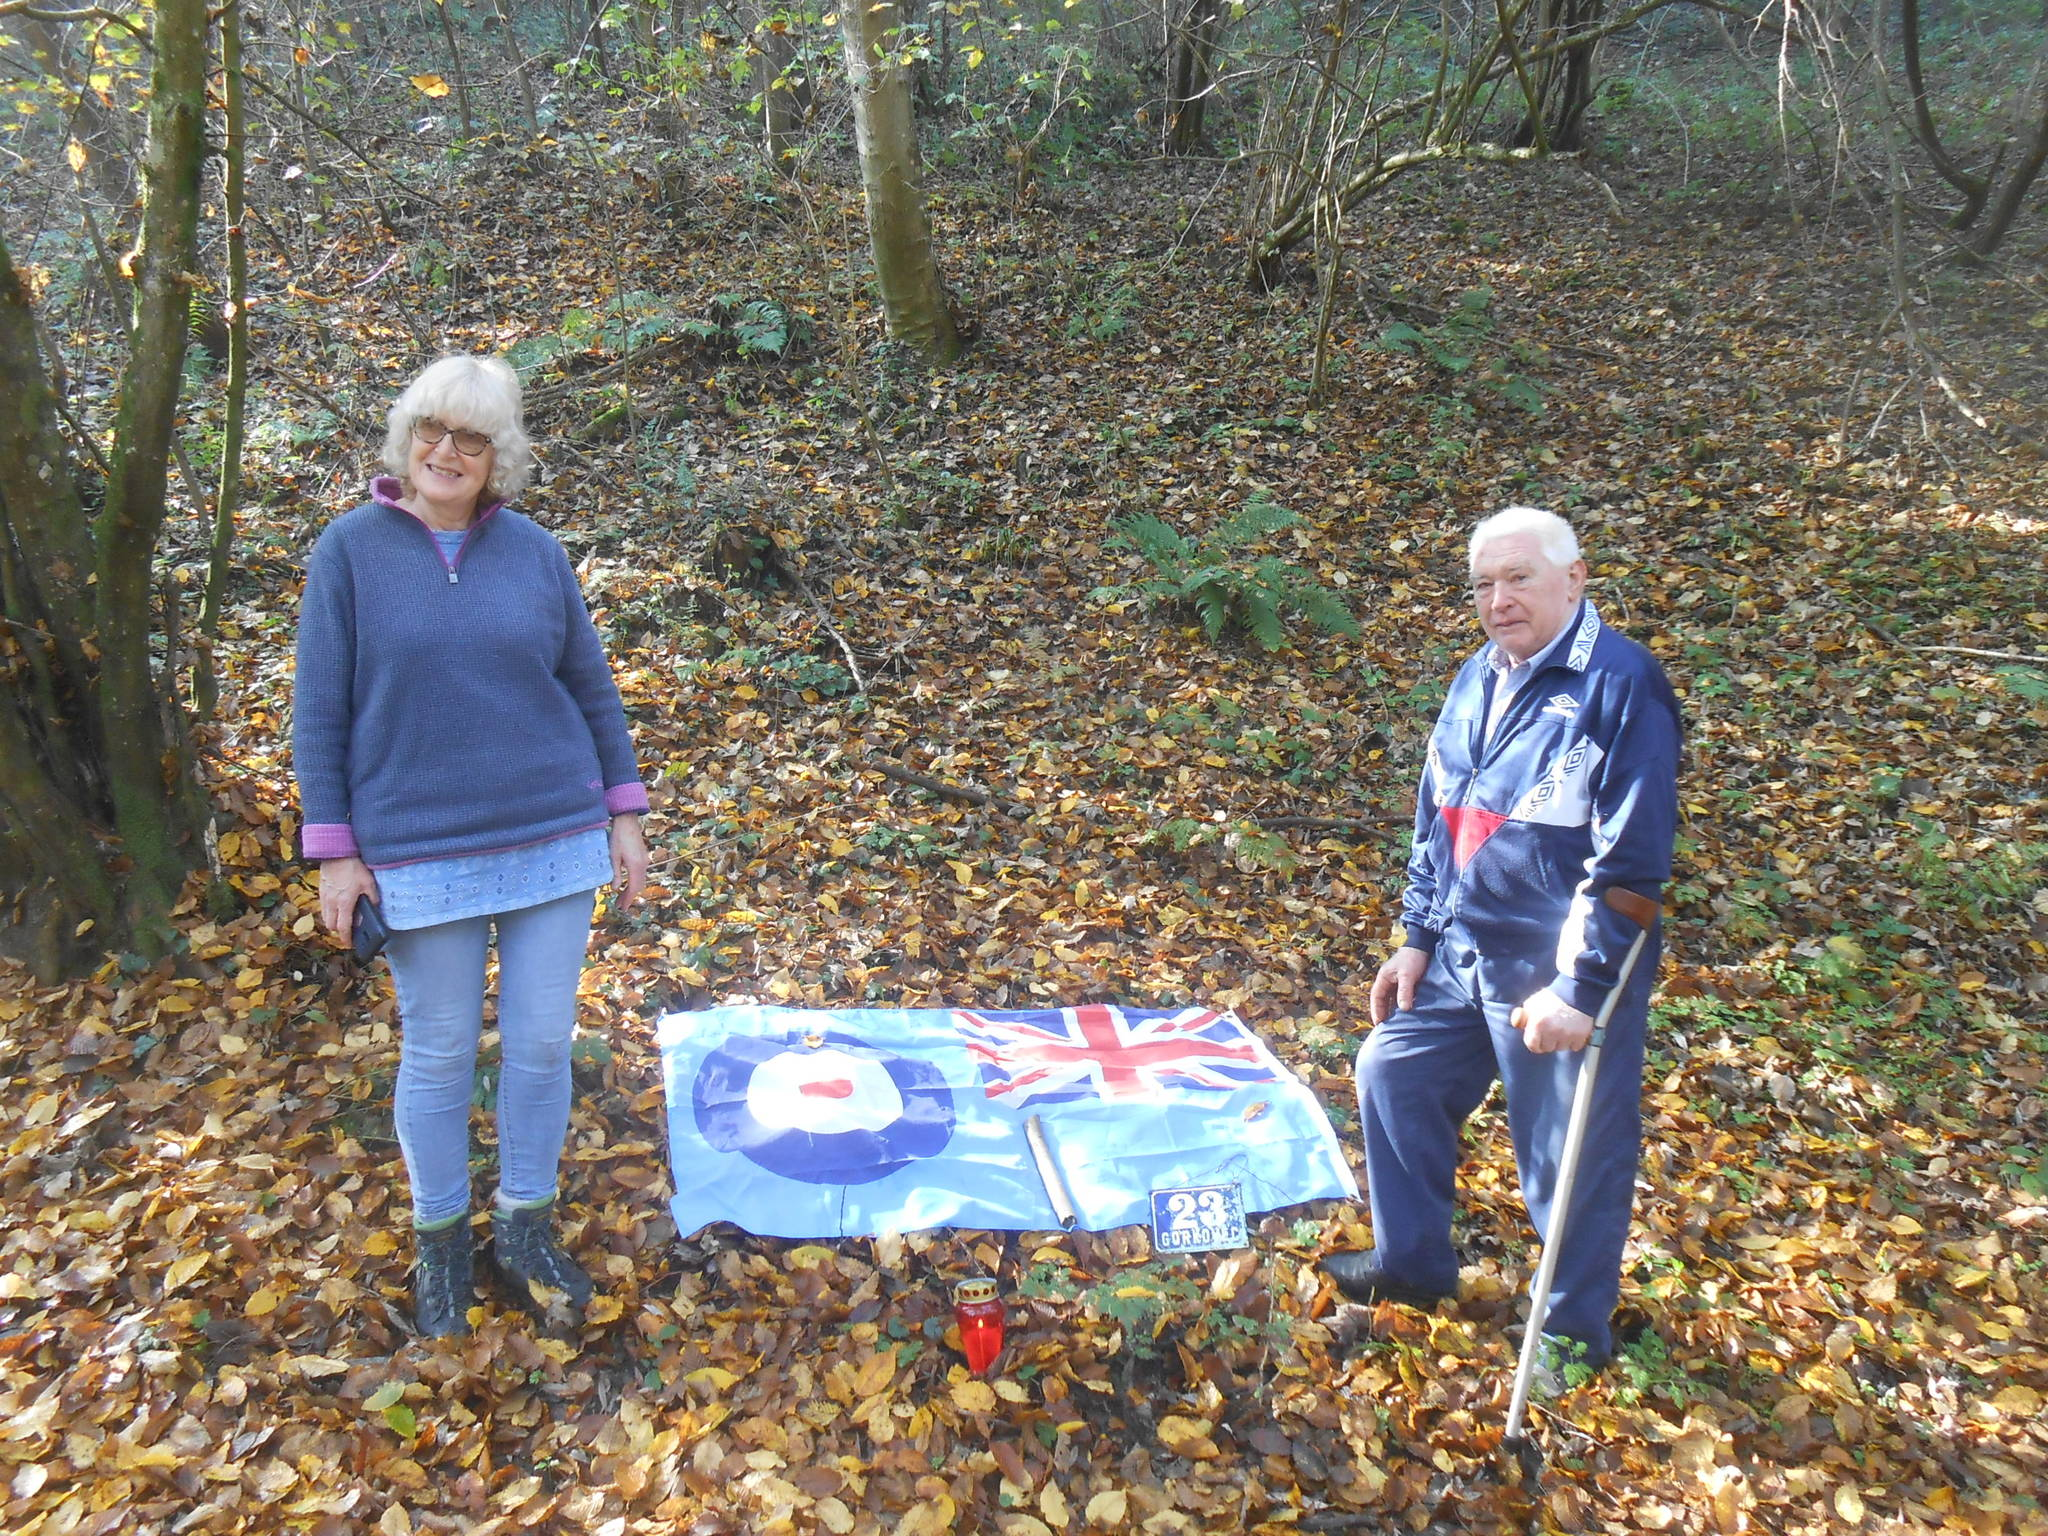 Heather Maling and Zvonko with a flag and candle at the crash site. Photo: Submitted